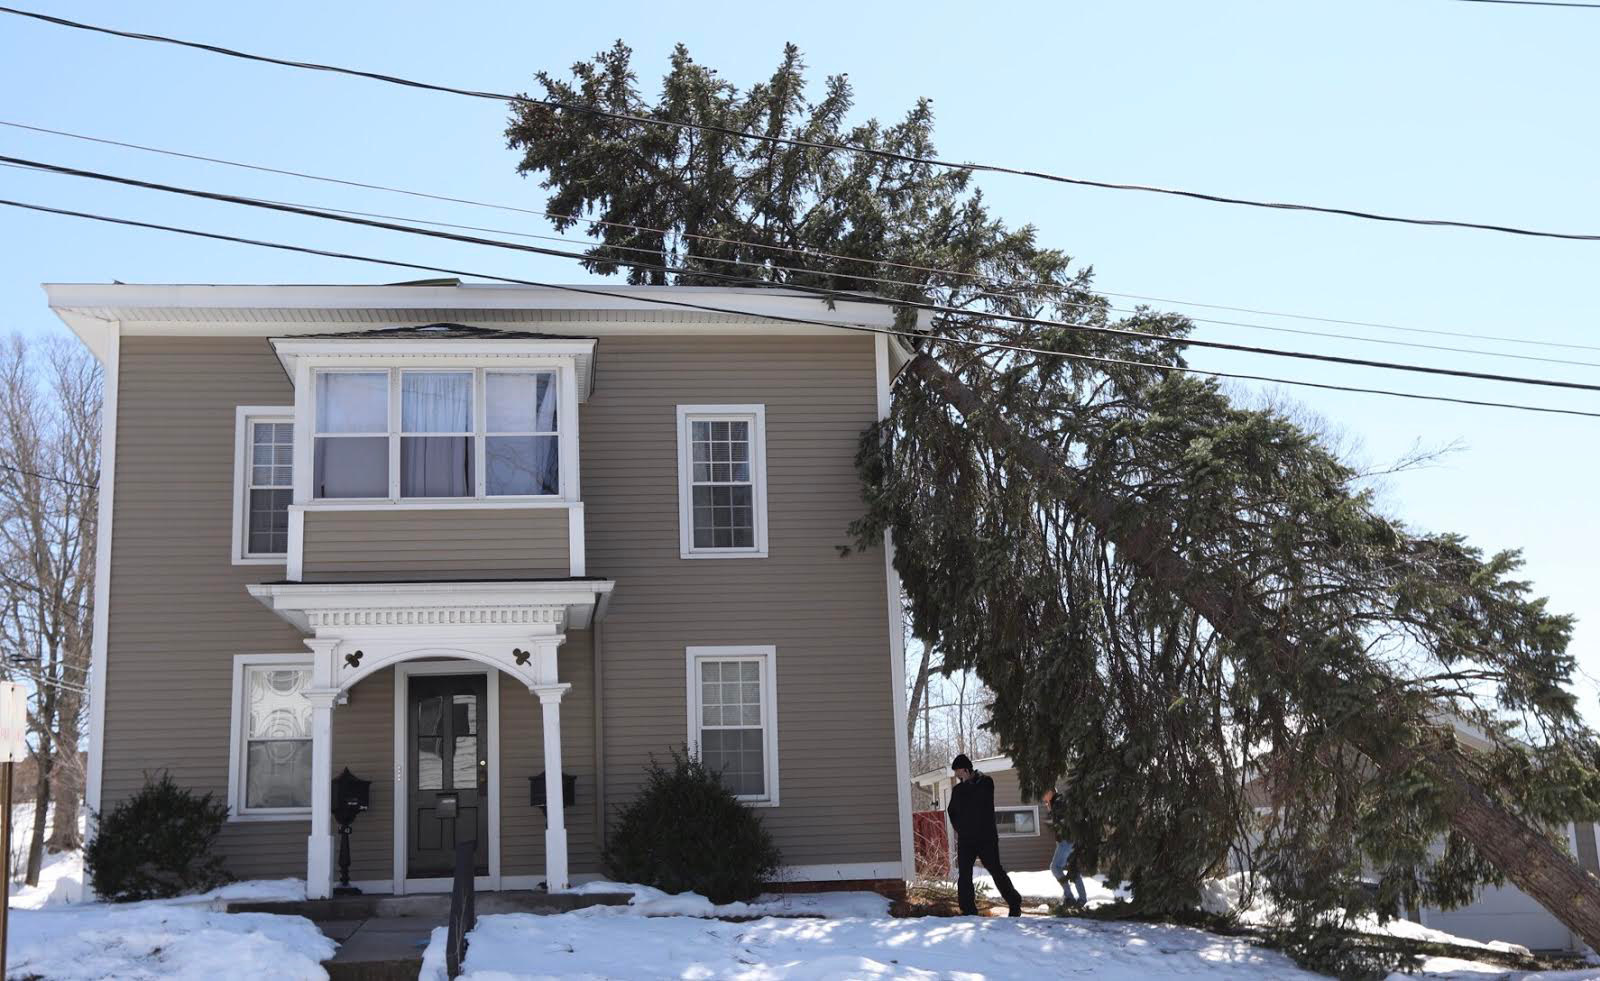 A tree crashed into a house at 42 Vermont Ave. in Southington Wednesday. | Dave Zajac, Record-Journal